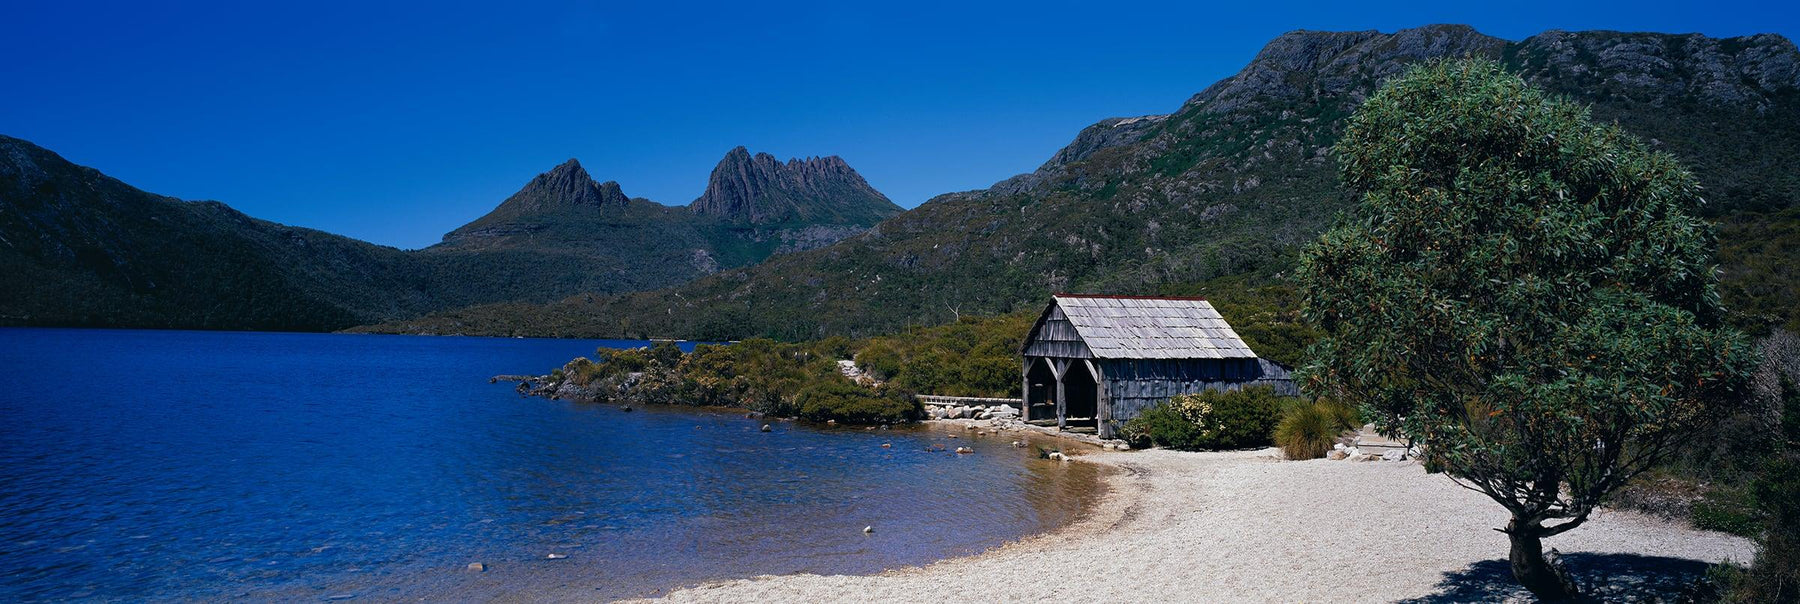 Old wooden boathouse on the sandy shores of Dove Lake in Australia